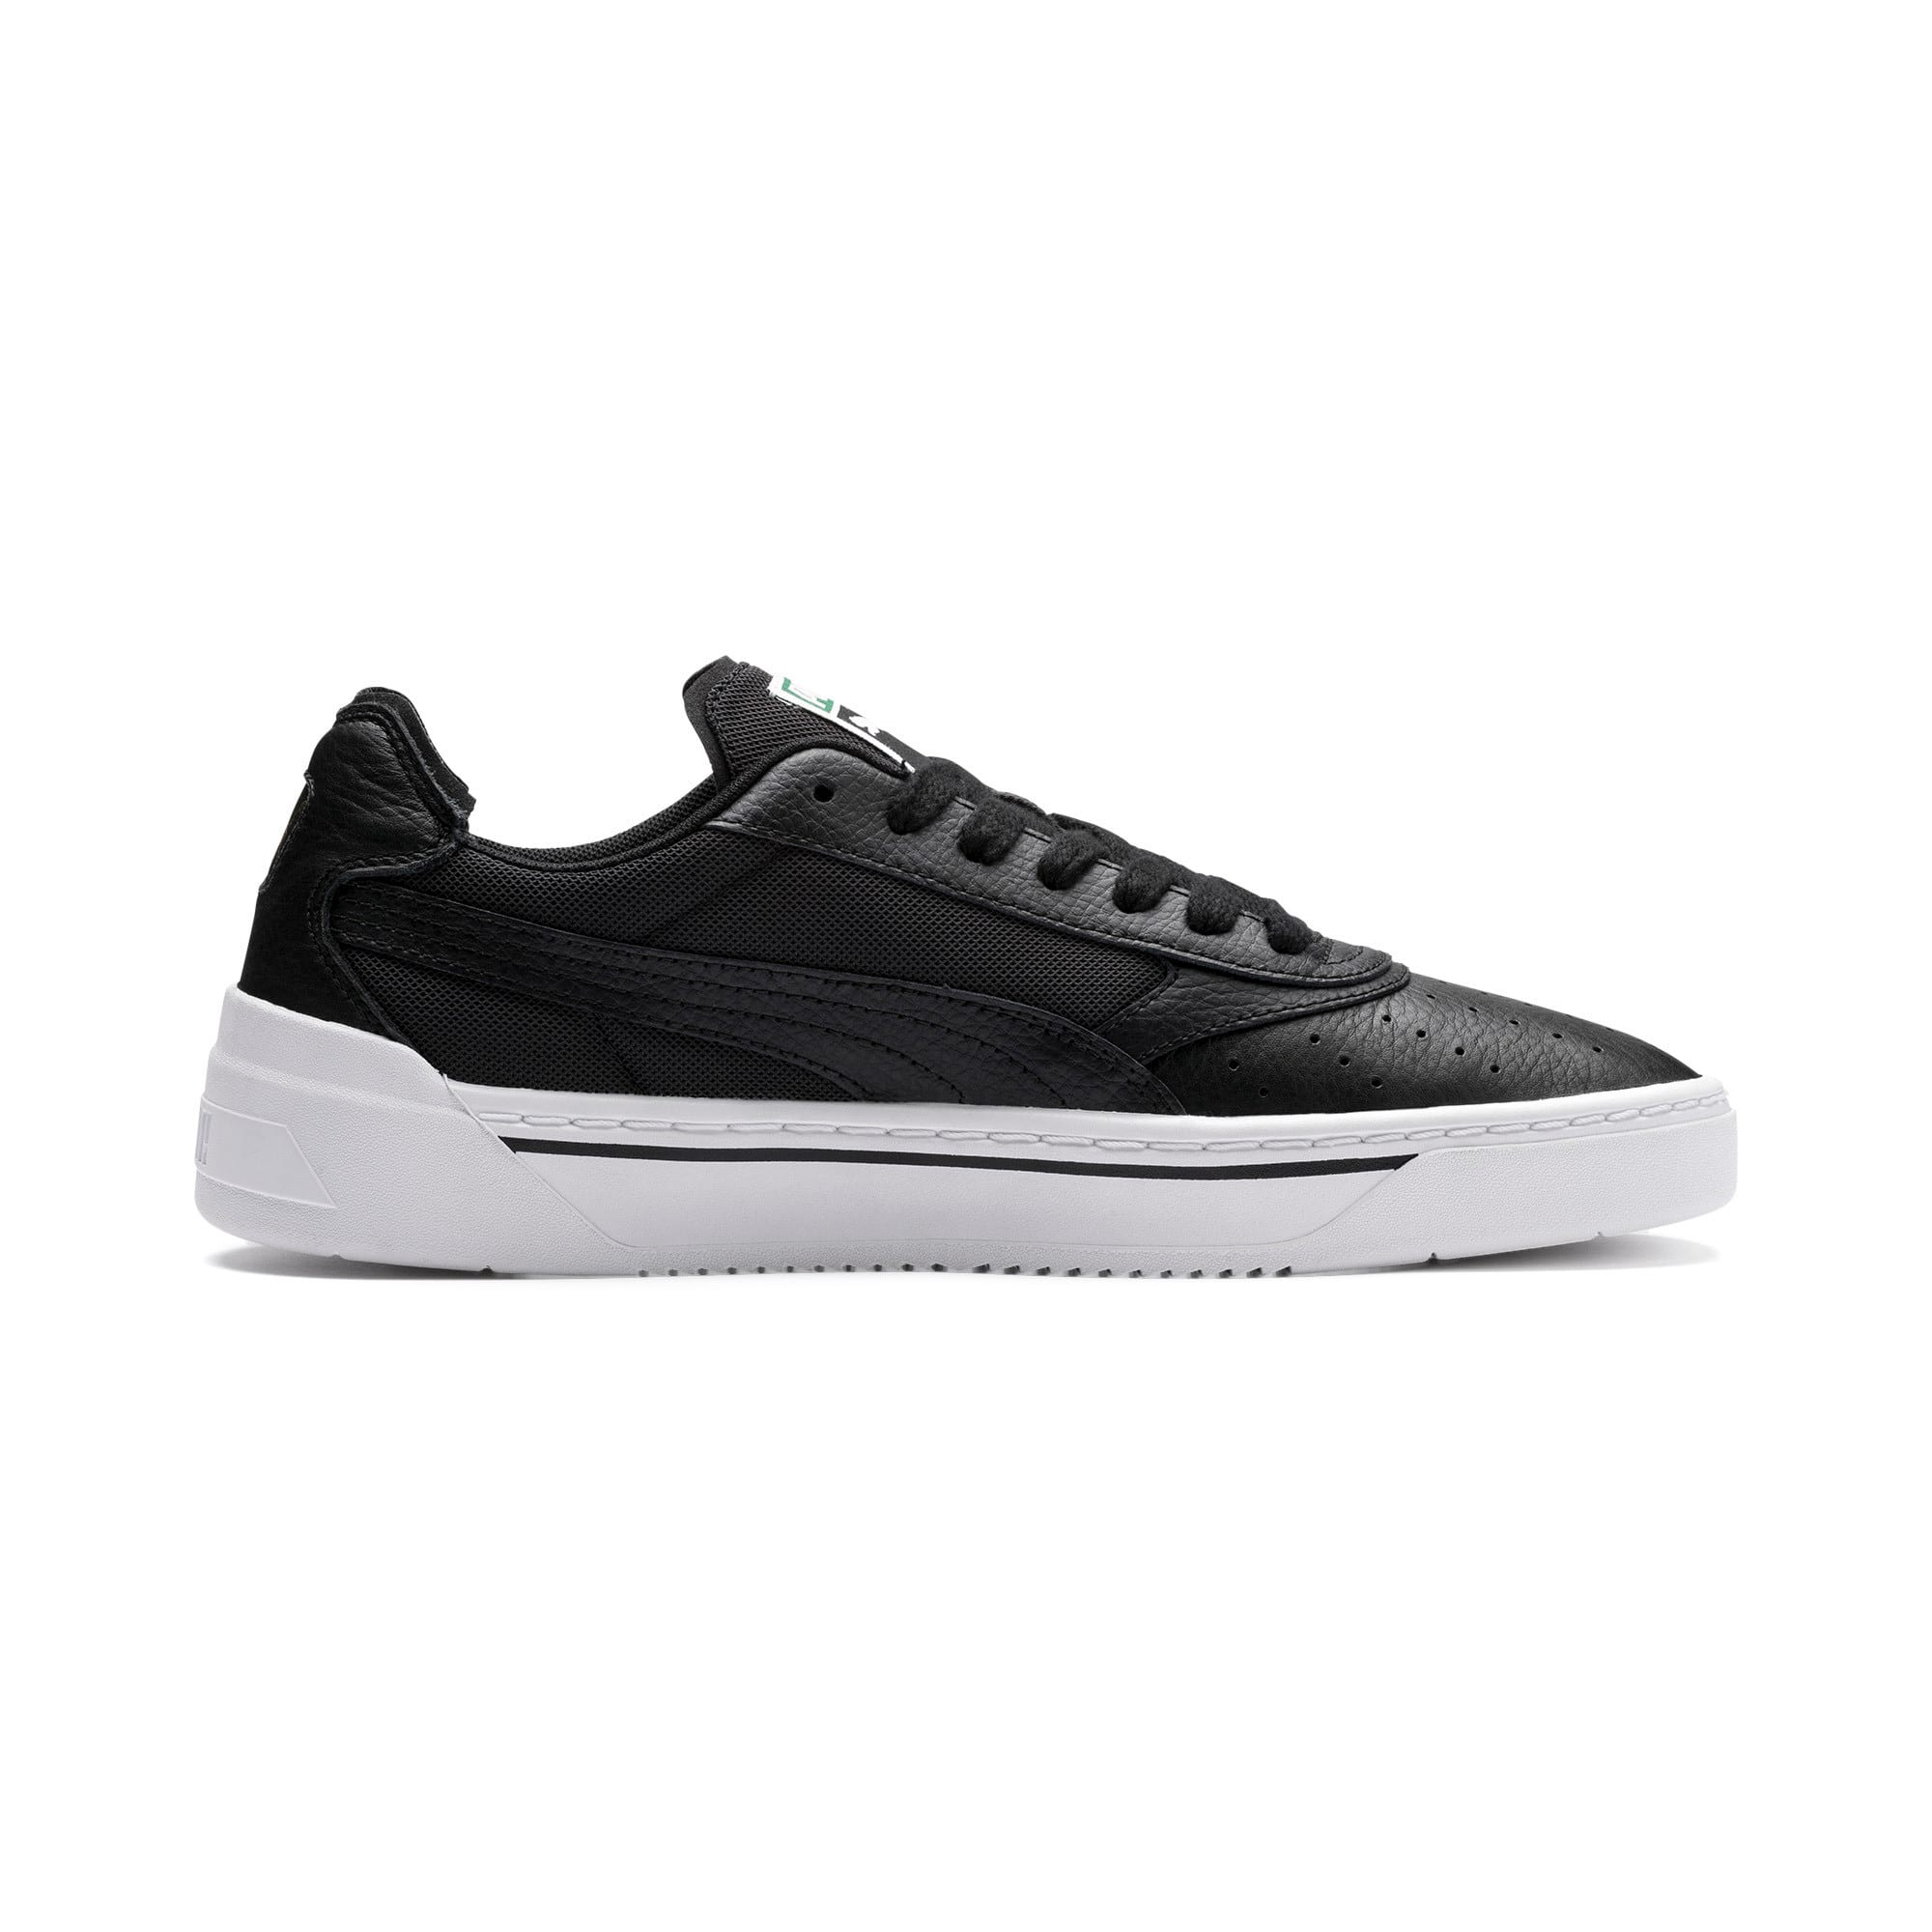 Thumbnail 6 of Cali-0 Sneakers, Puma Black-Puma Blk-Puma Wht, medium